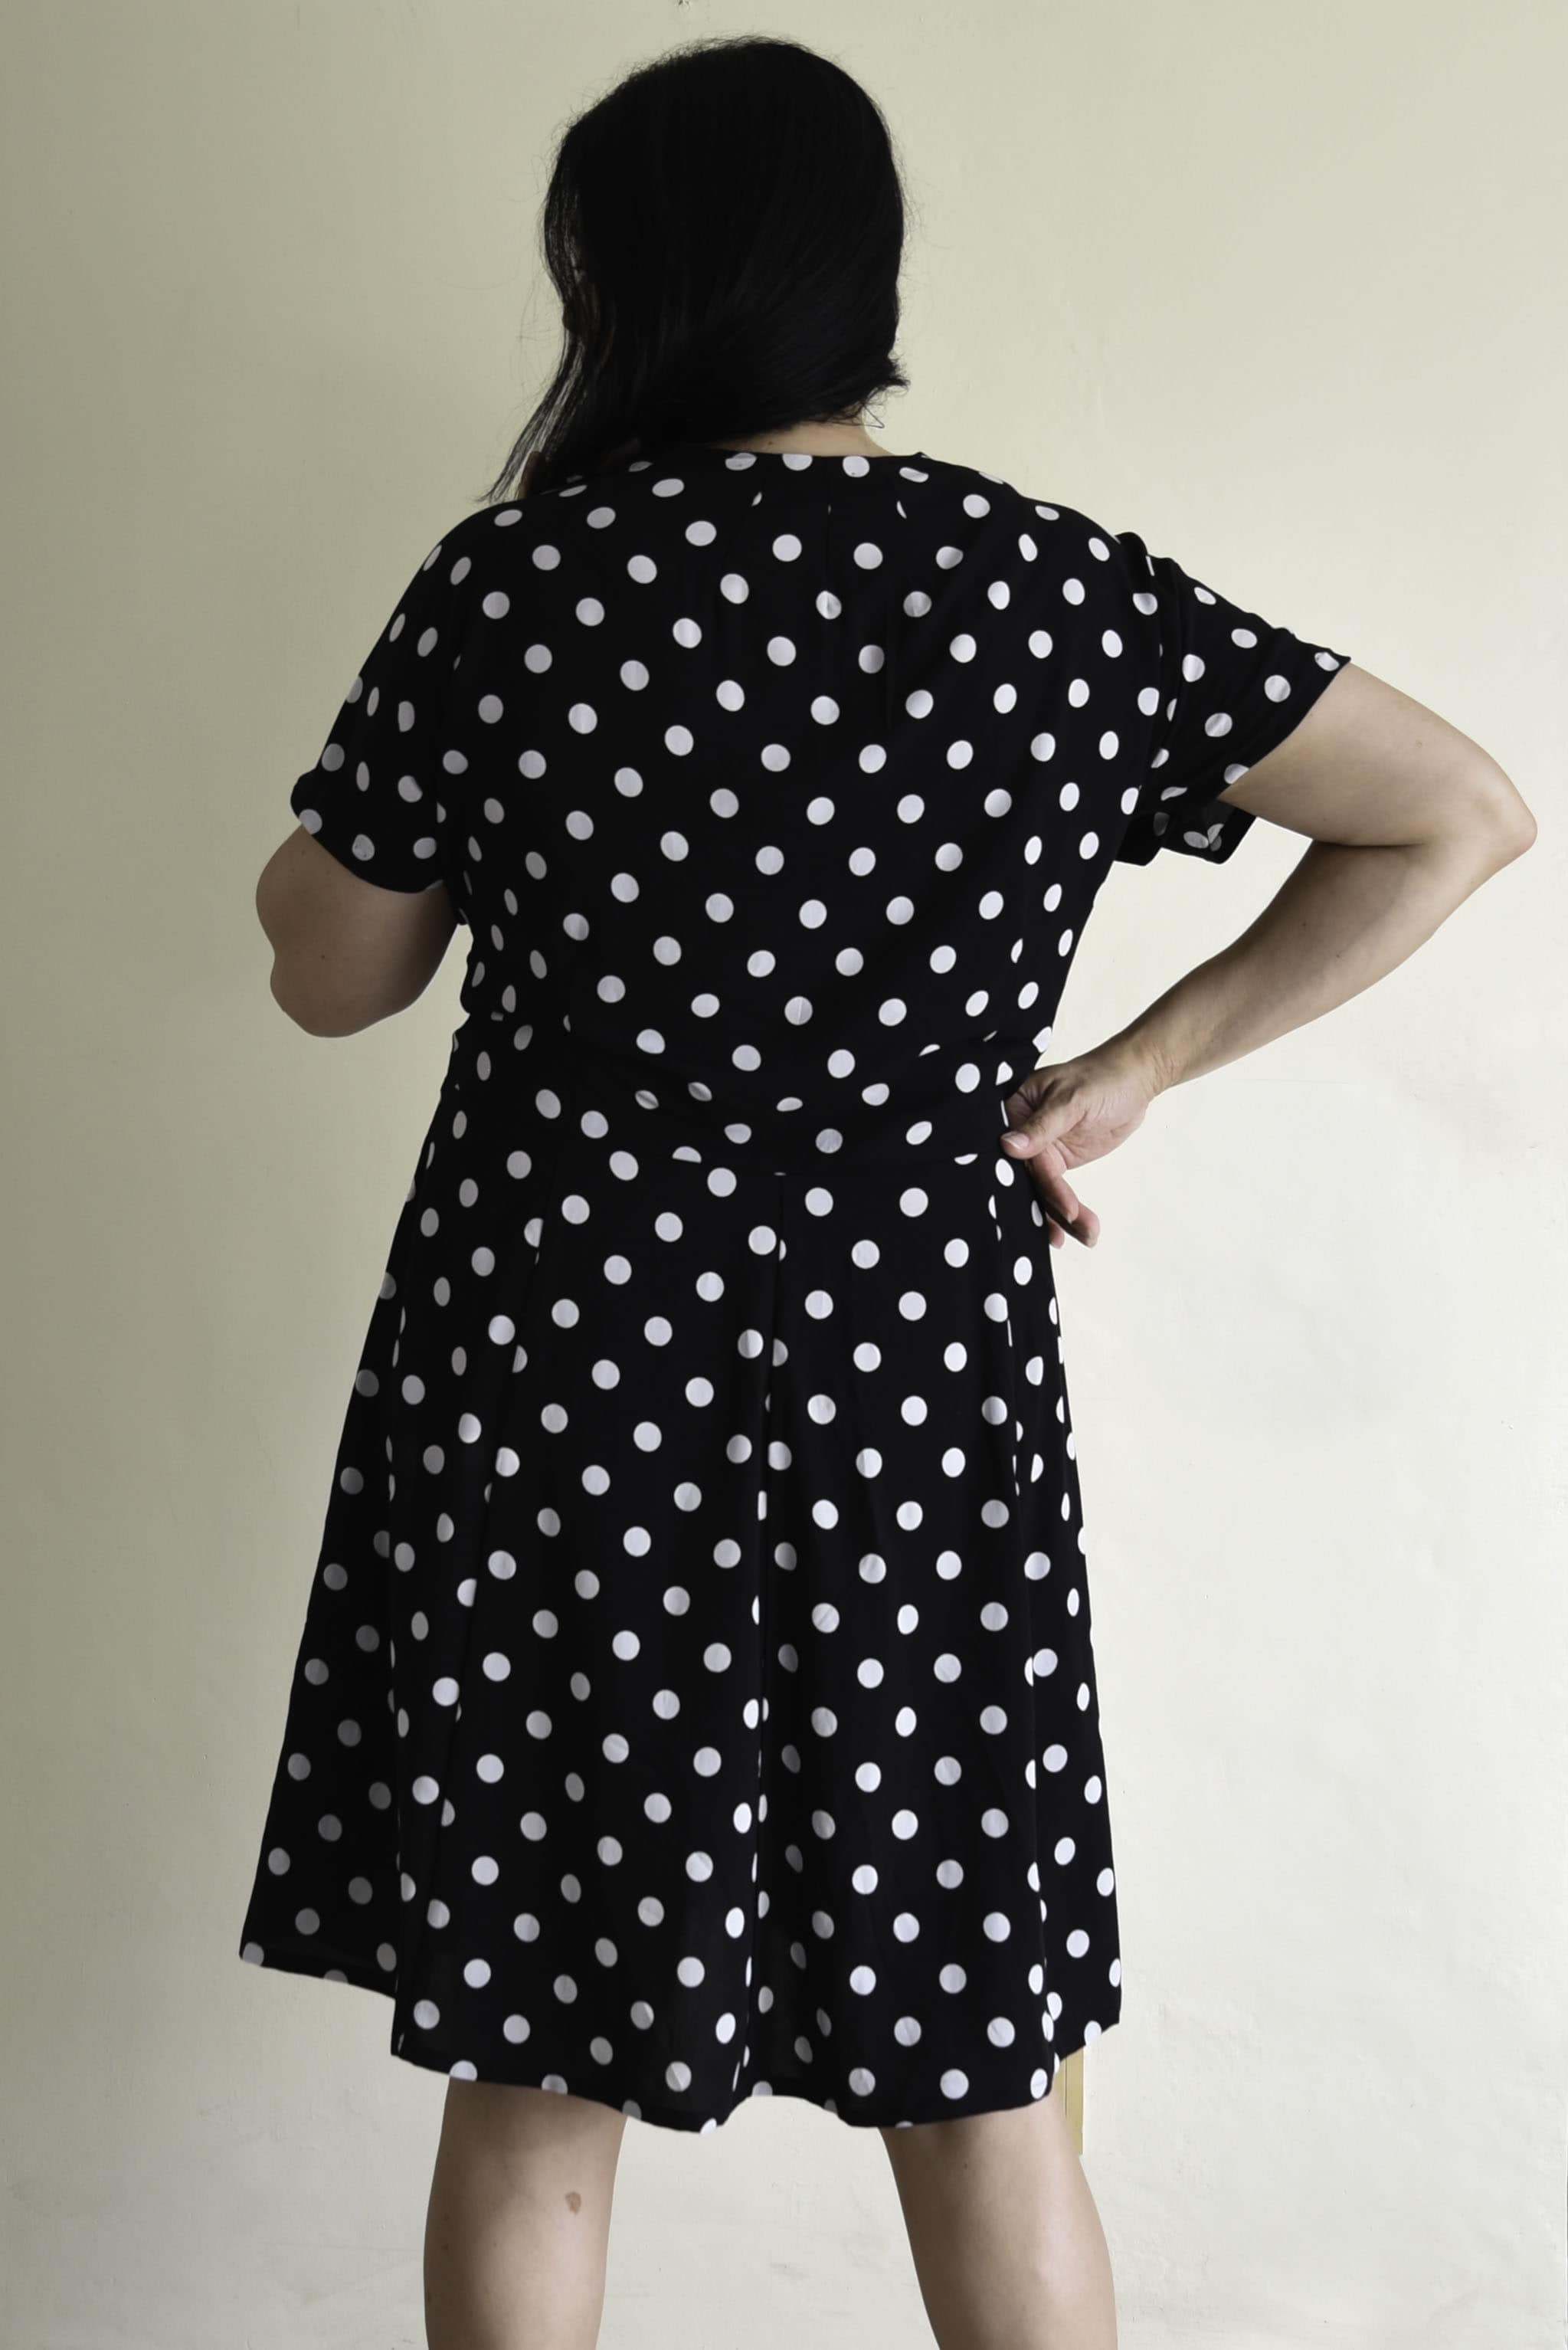 Image of woman with long black hair standing back facing the camera wearing a black and white polka dotted Myrna